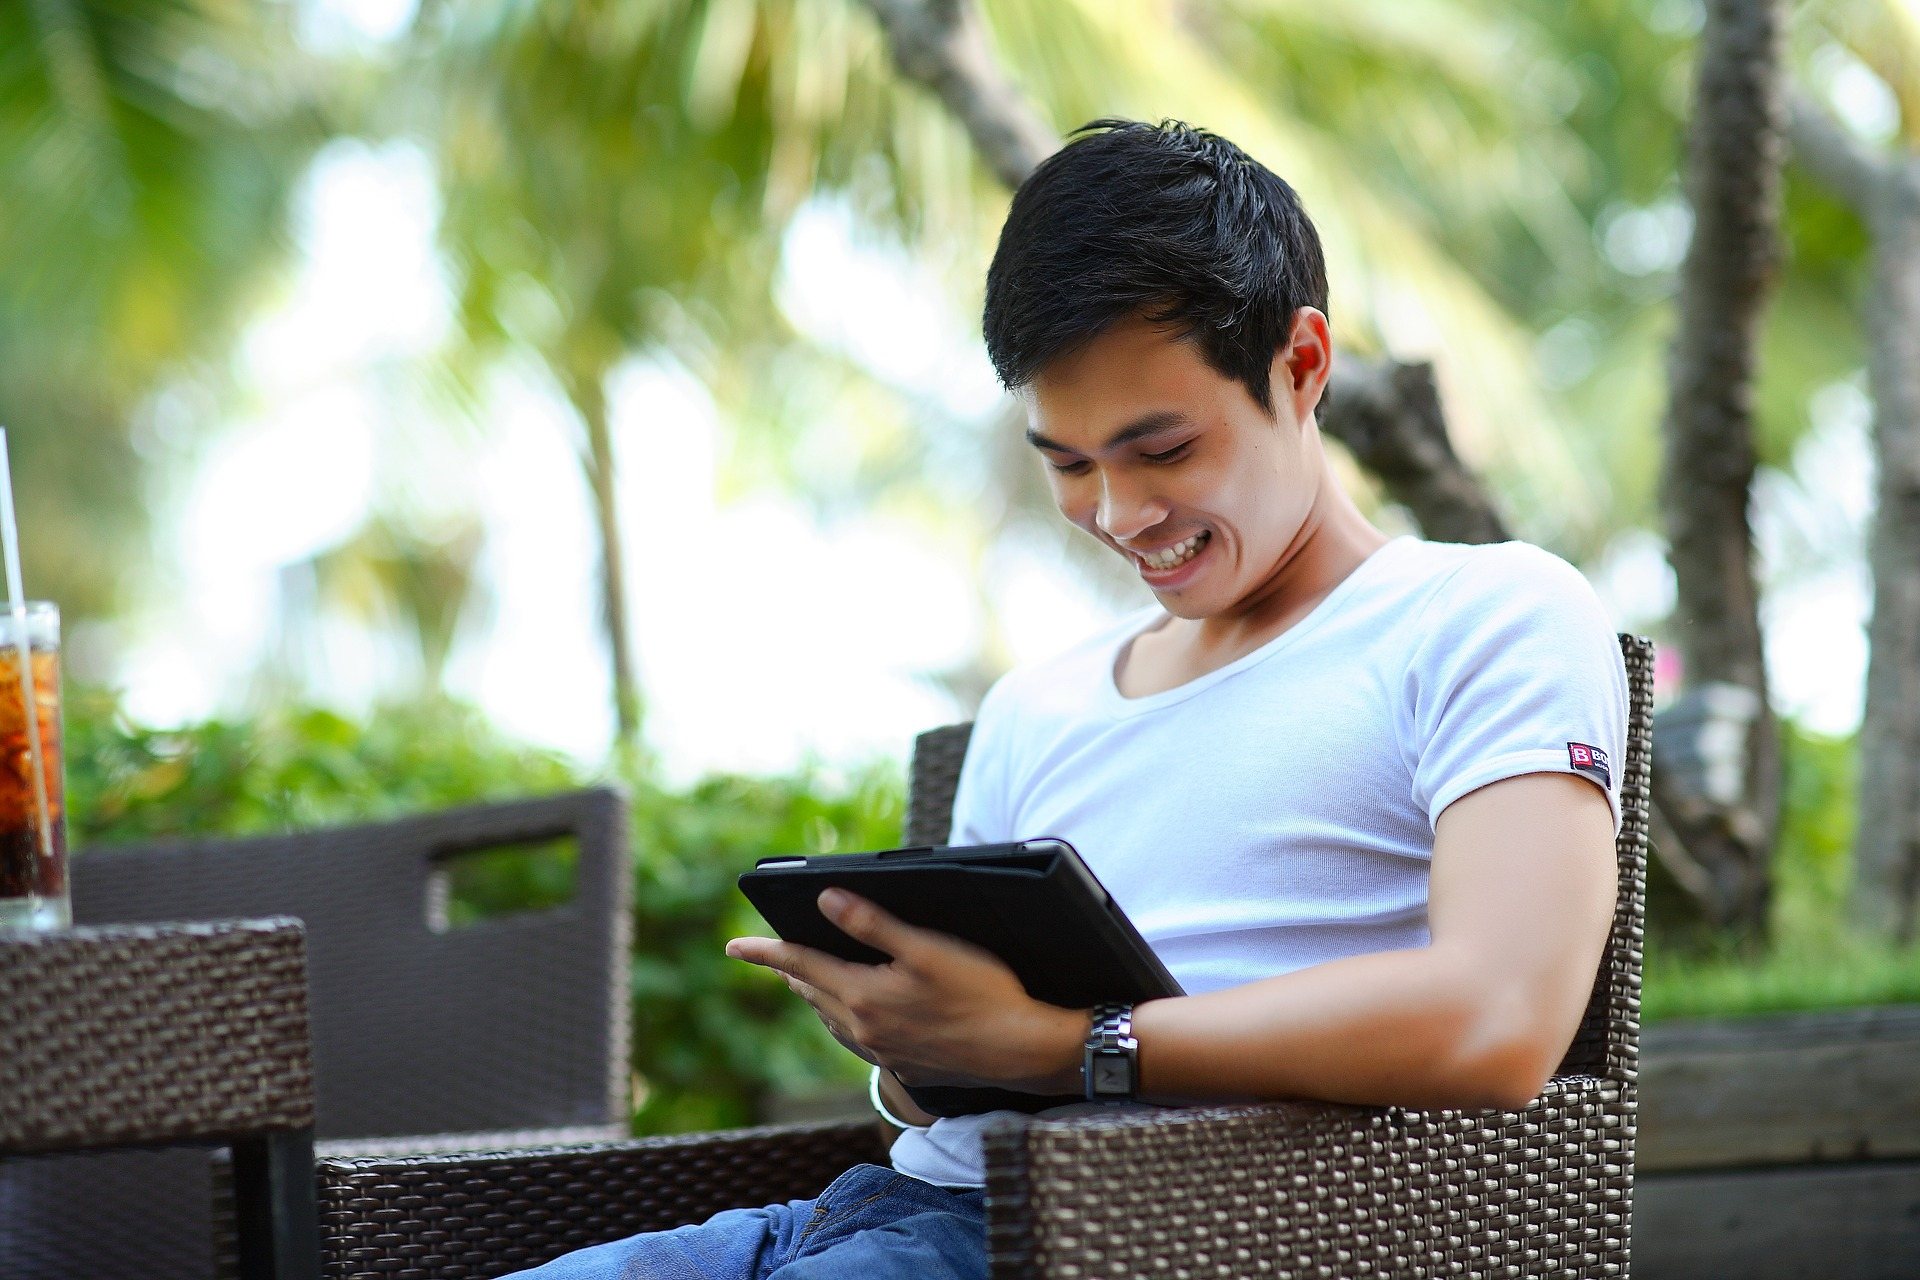 Man on tablet smiling